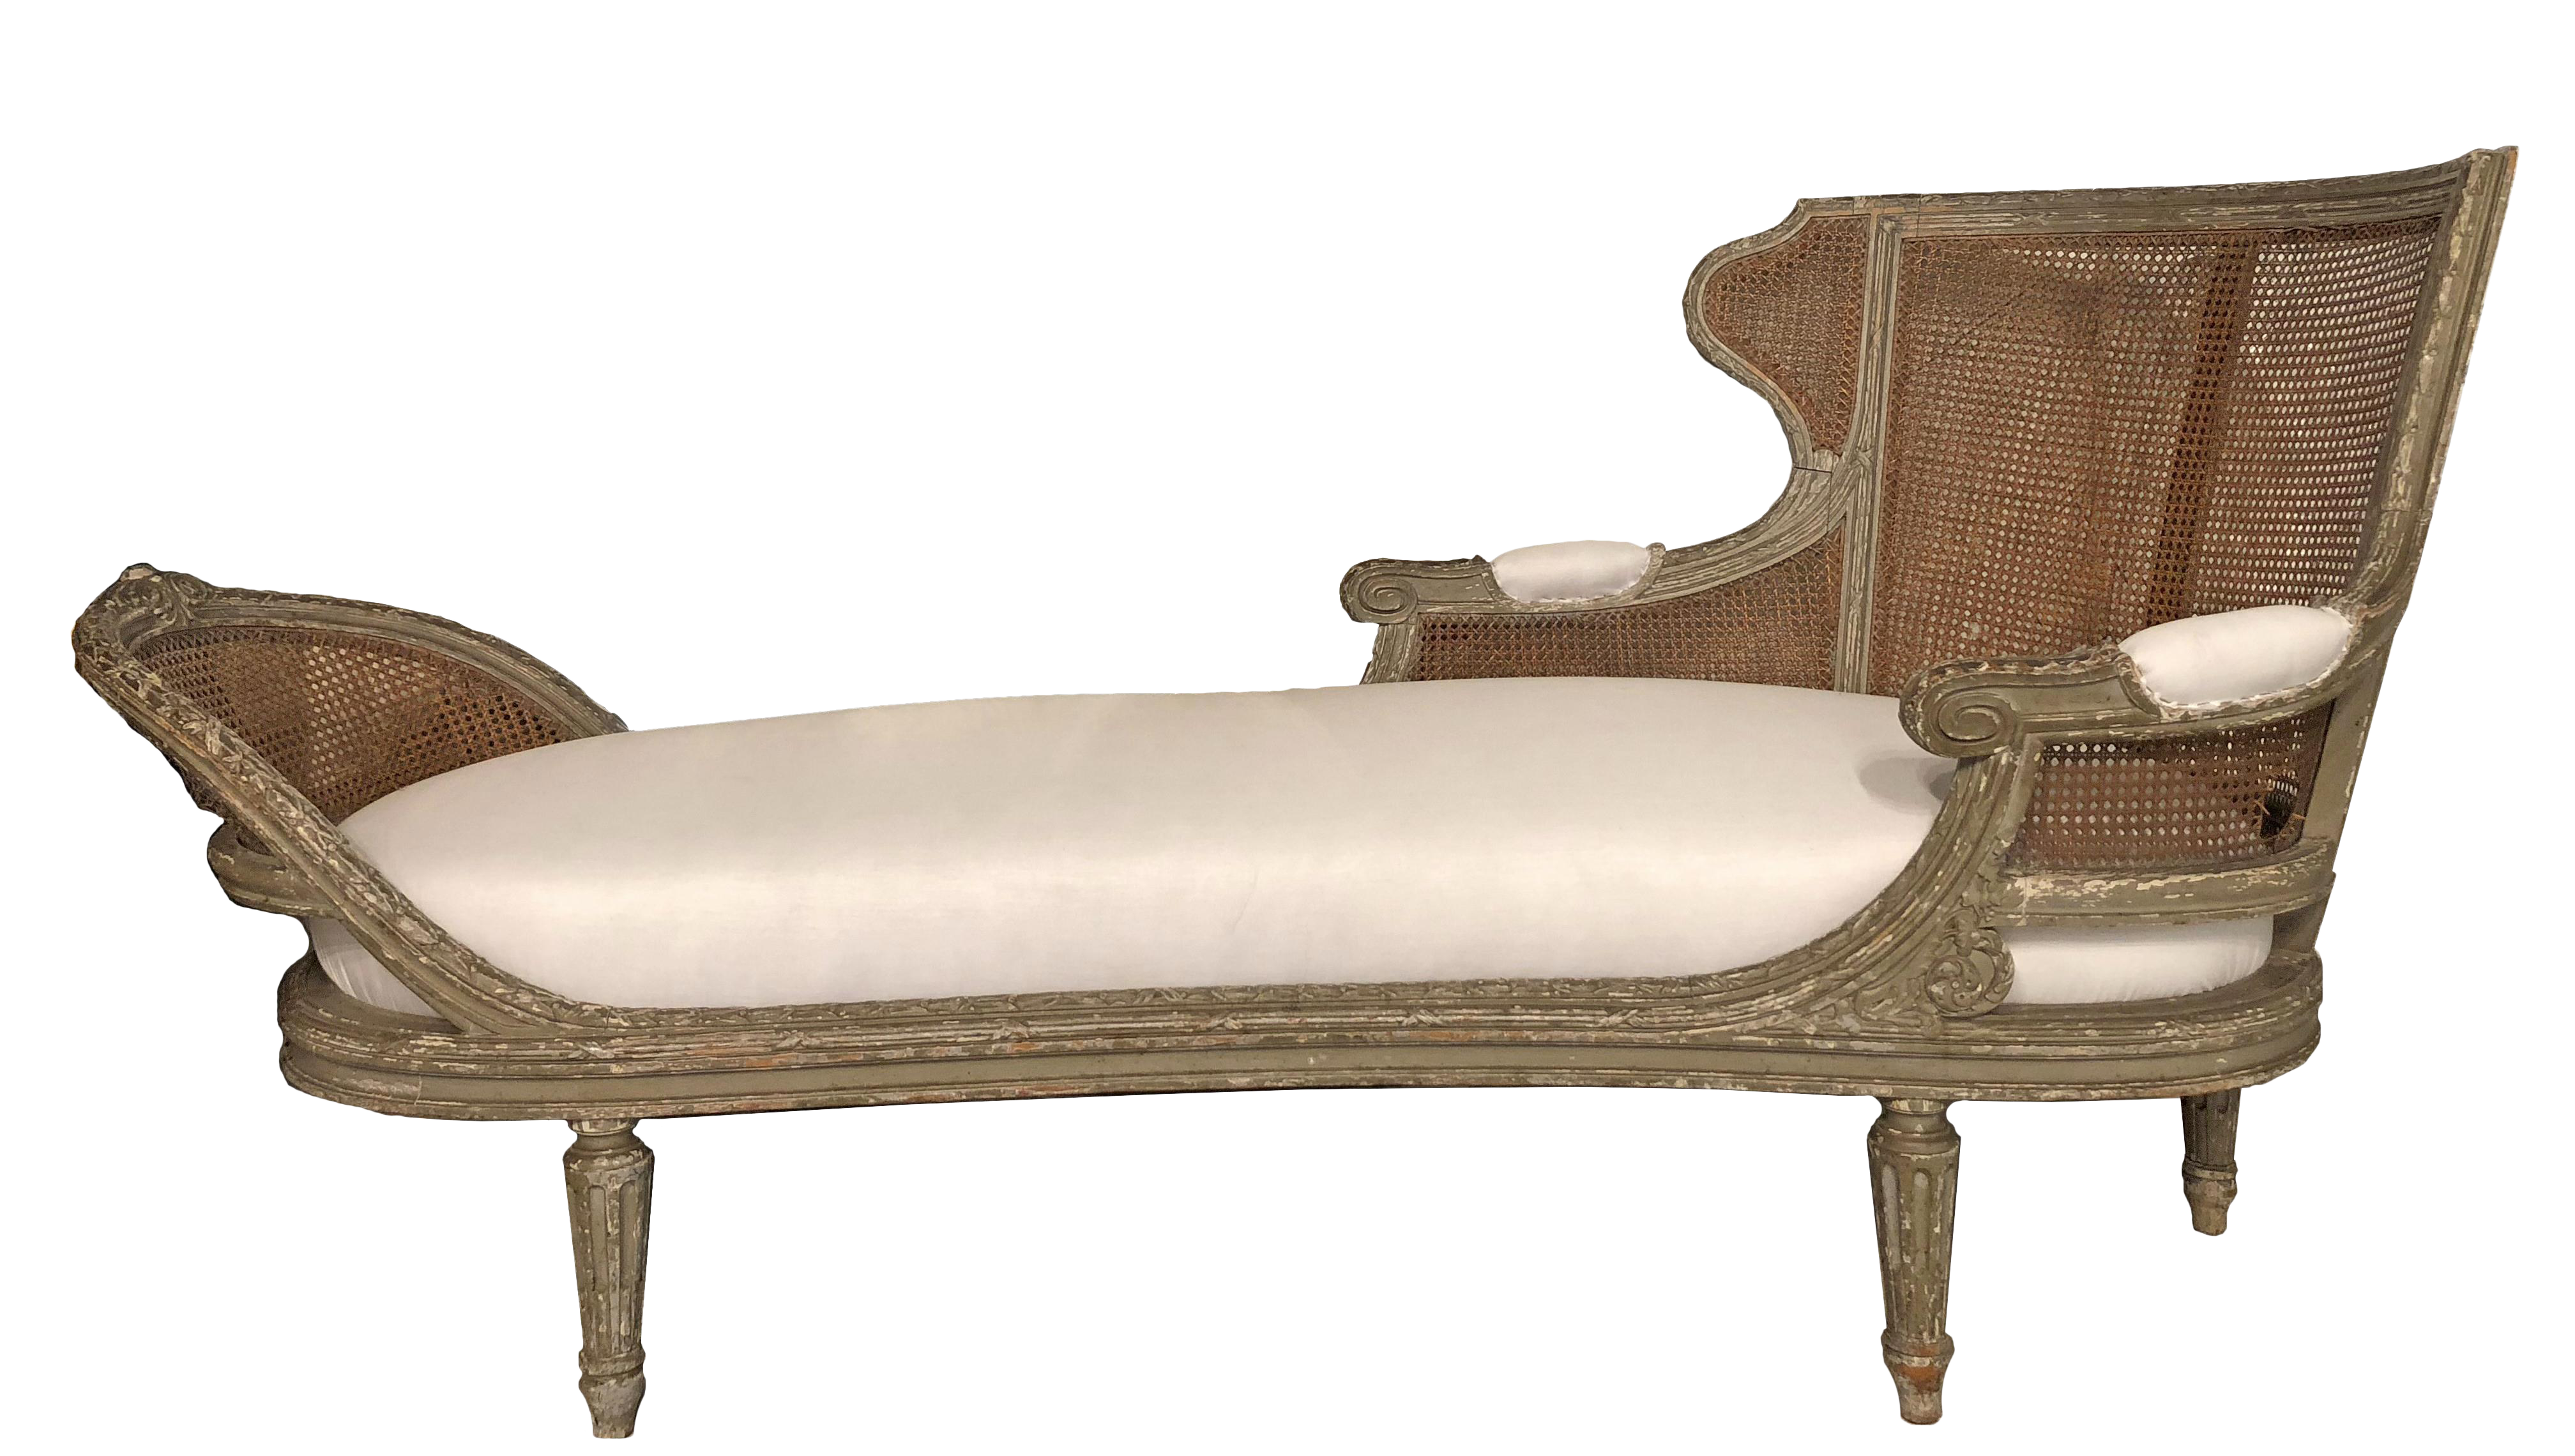 Chaise Caned Master 1850 Antique LoungeAbigal's French Bedroom dsQhrtC